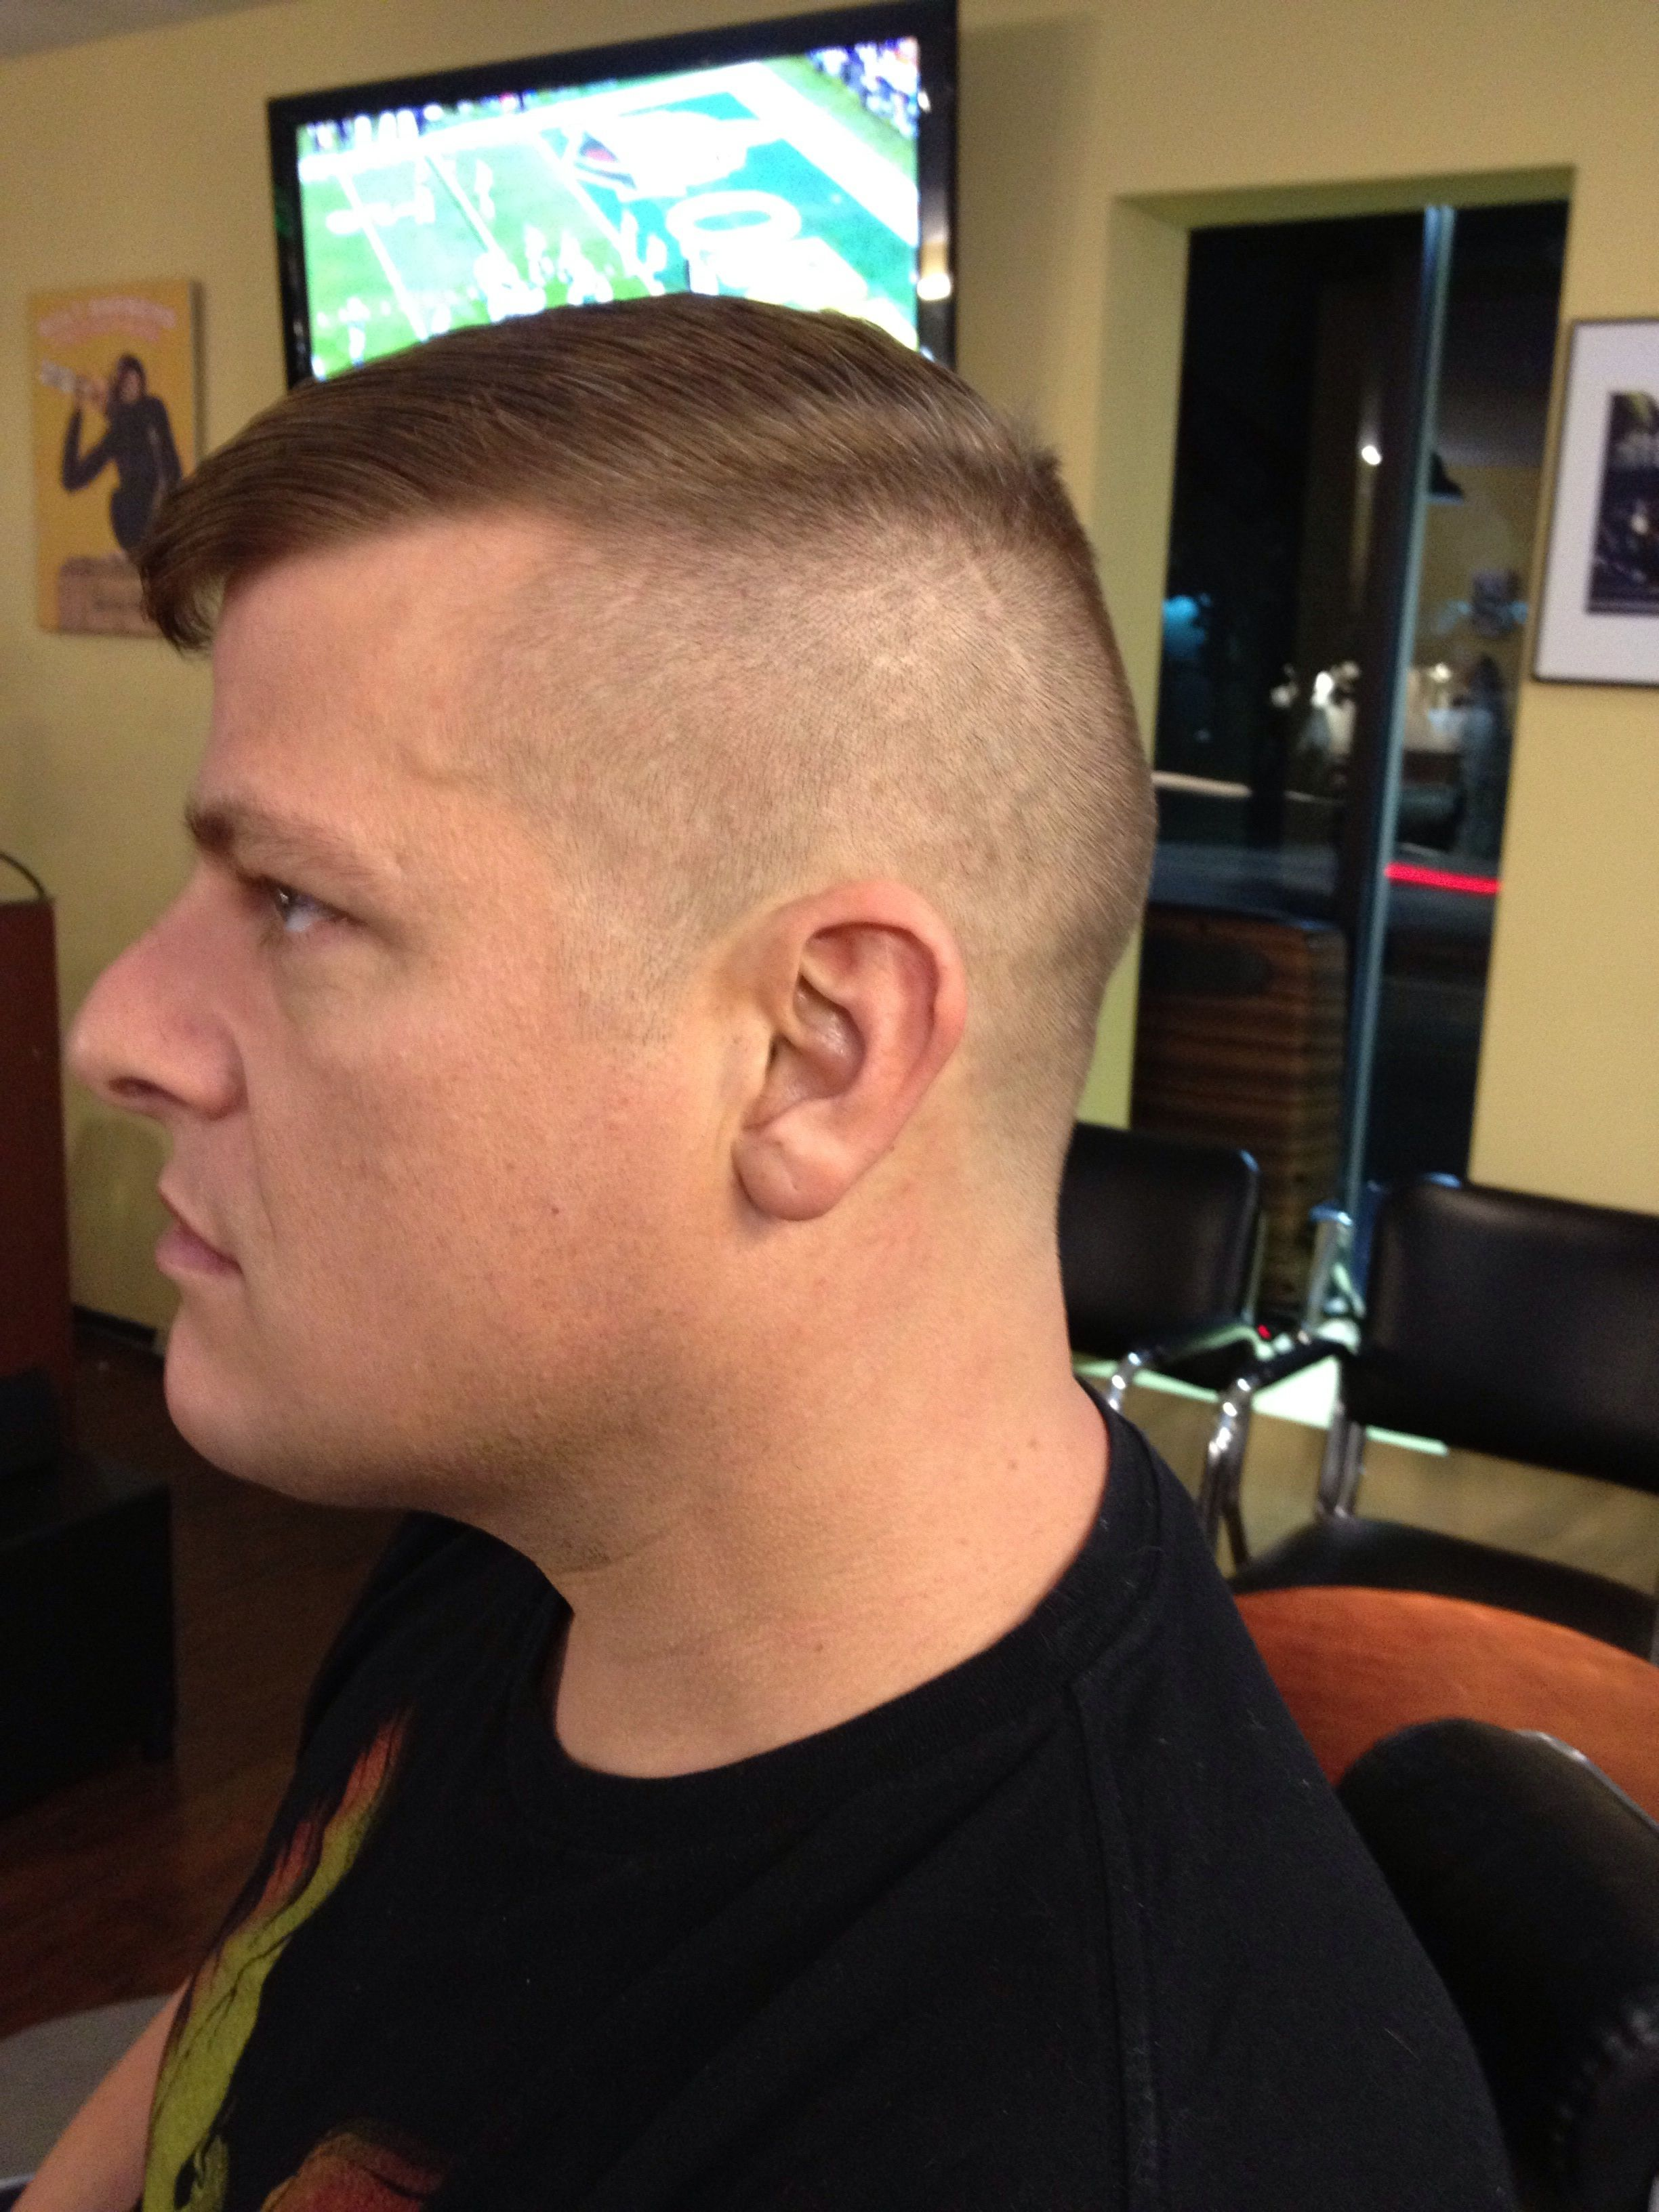 Hitler Youth Late Night Haircut 1a By Bolt Barbers Founder Mohawk